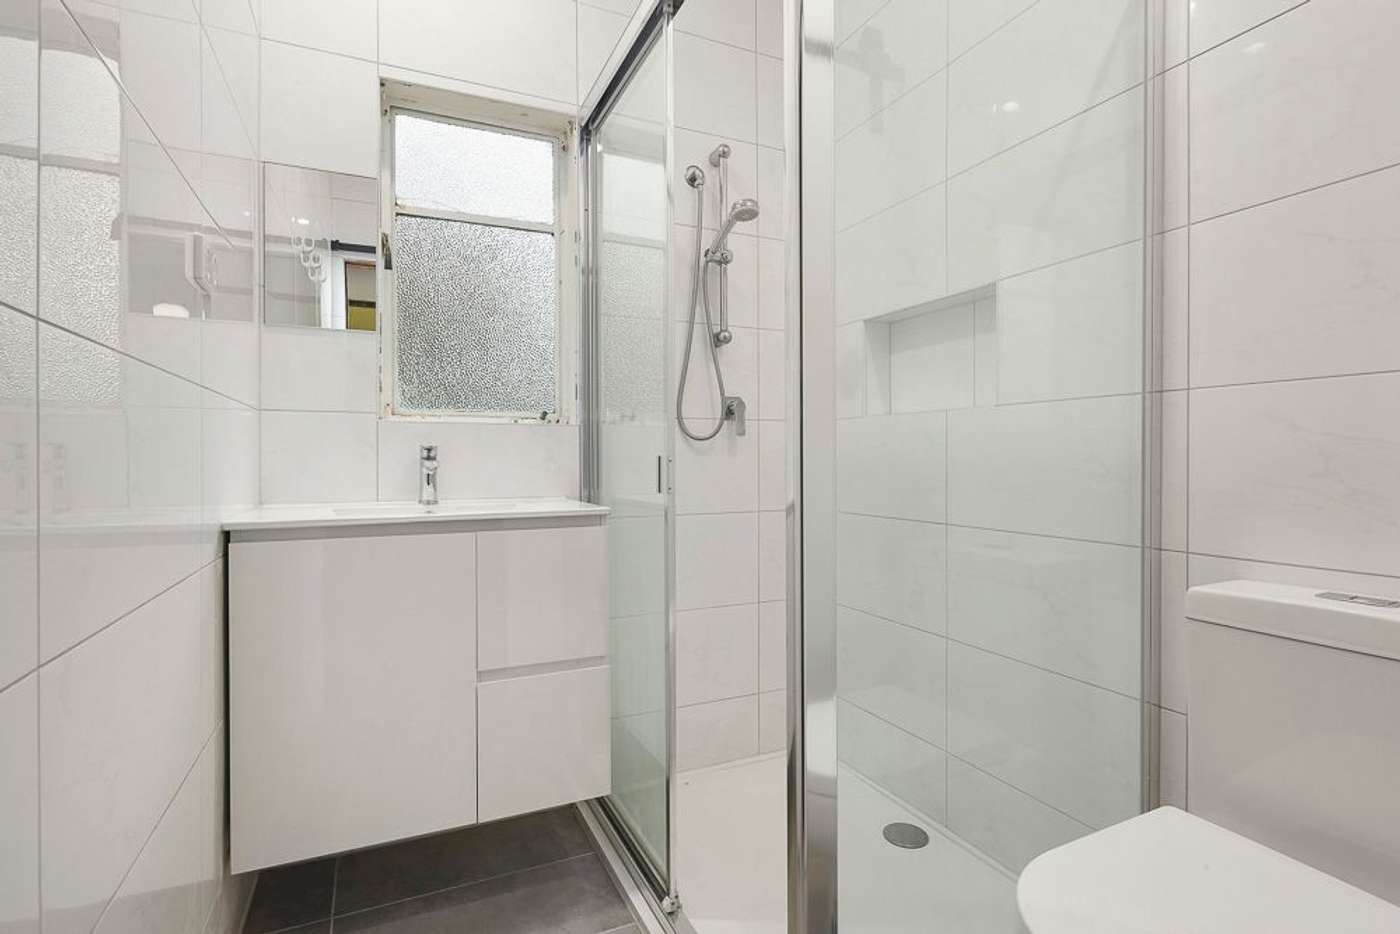 Seventh view of Homely house listing, 76 Coonans Road, Pascoe Vale South VIC 3044